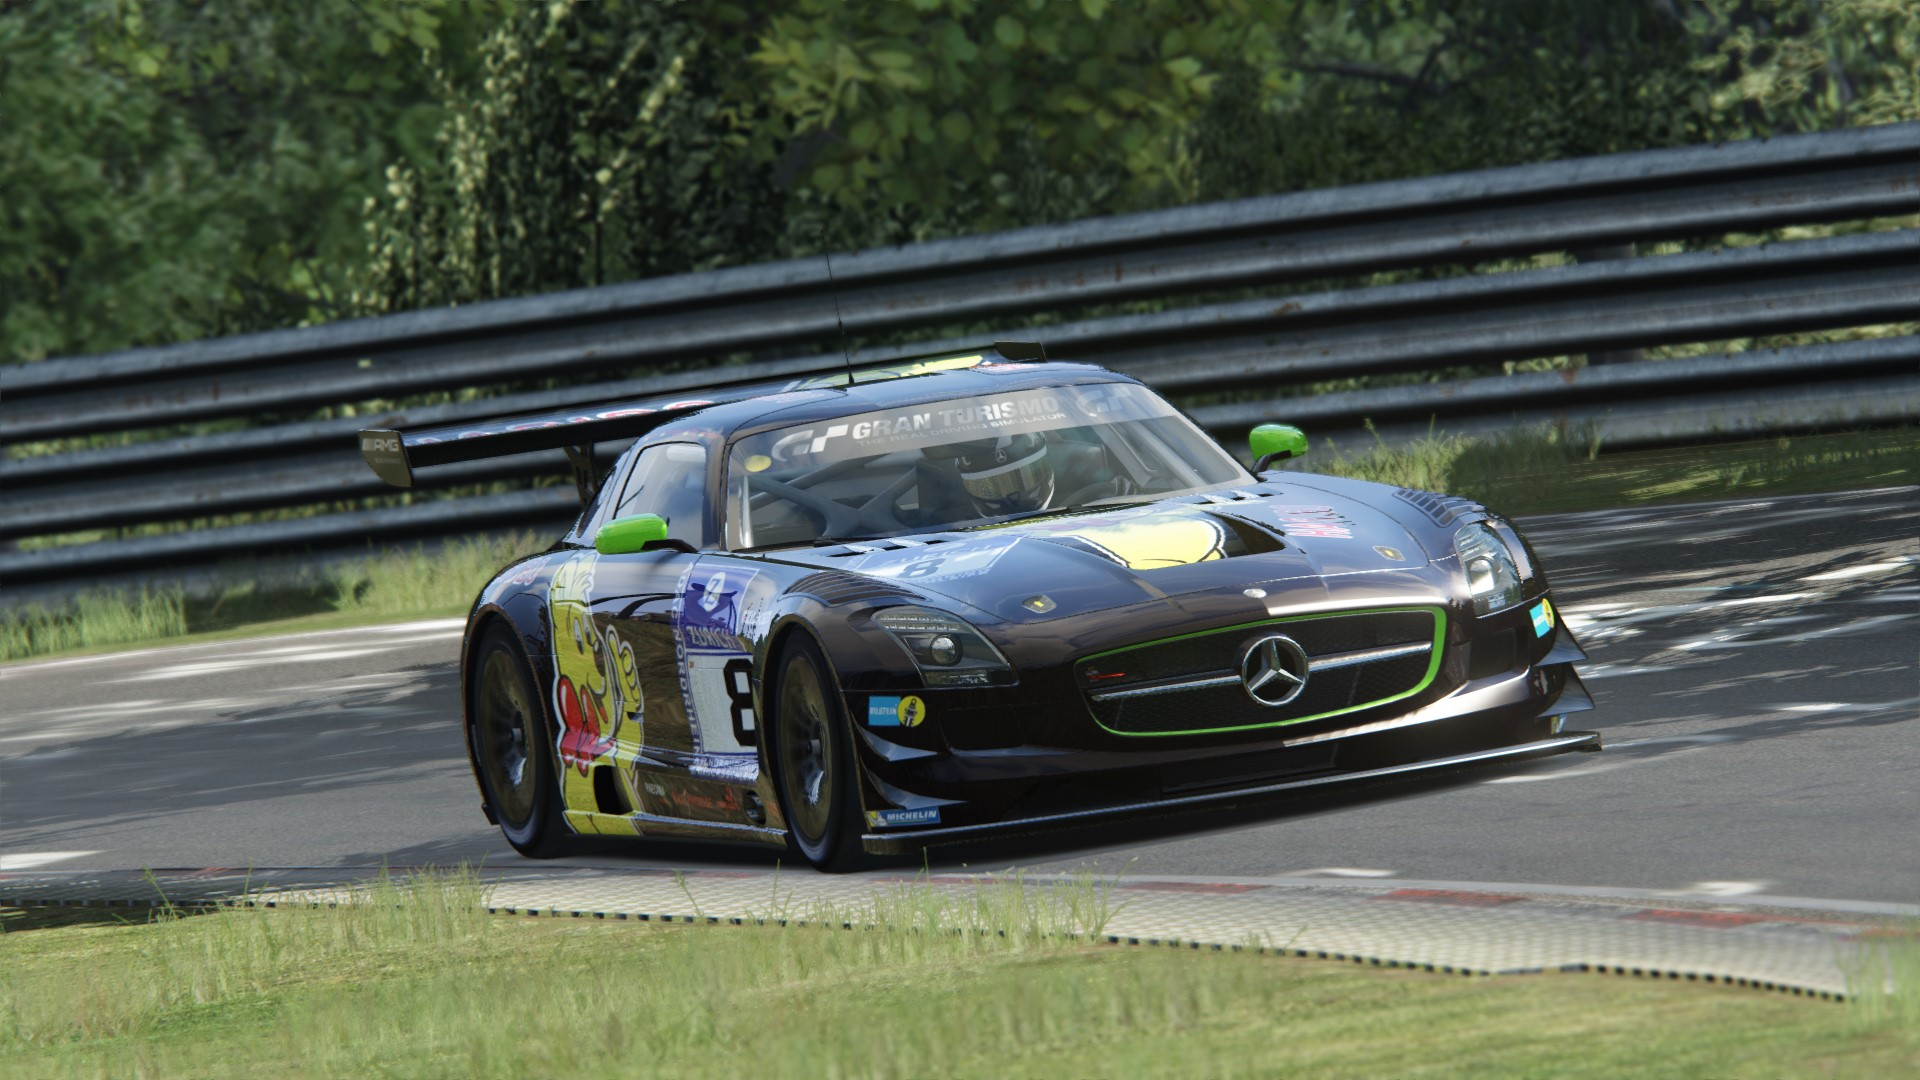 Screenshot_mercedes_sls_gt3_ks_nordschleife_11-4-116-22-52-10.jpg